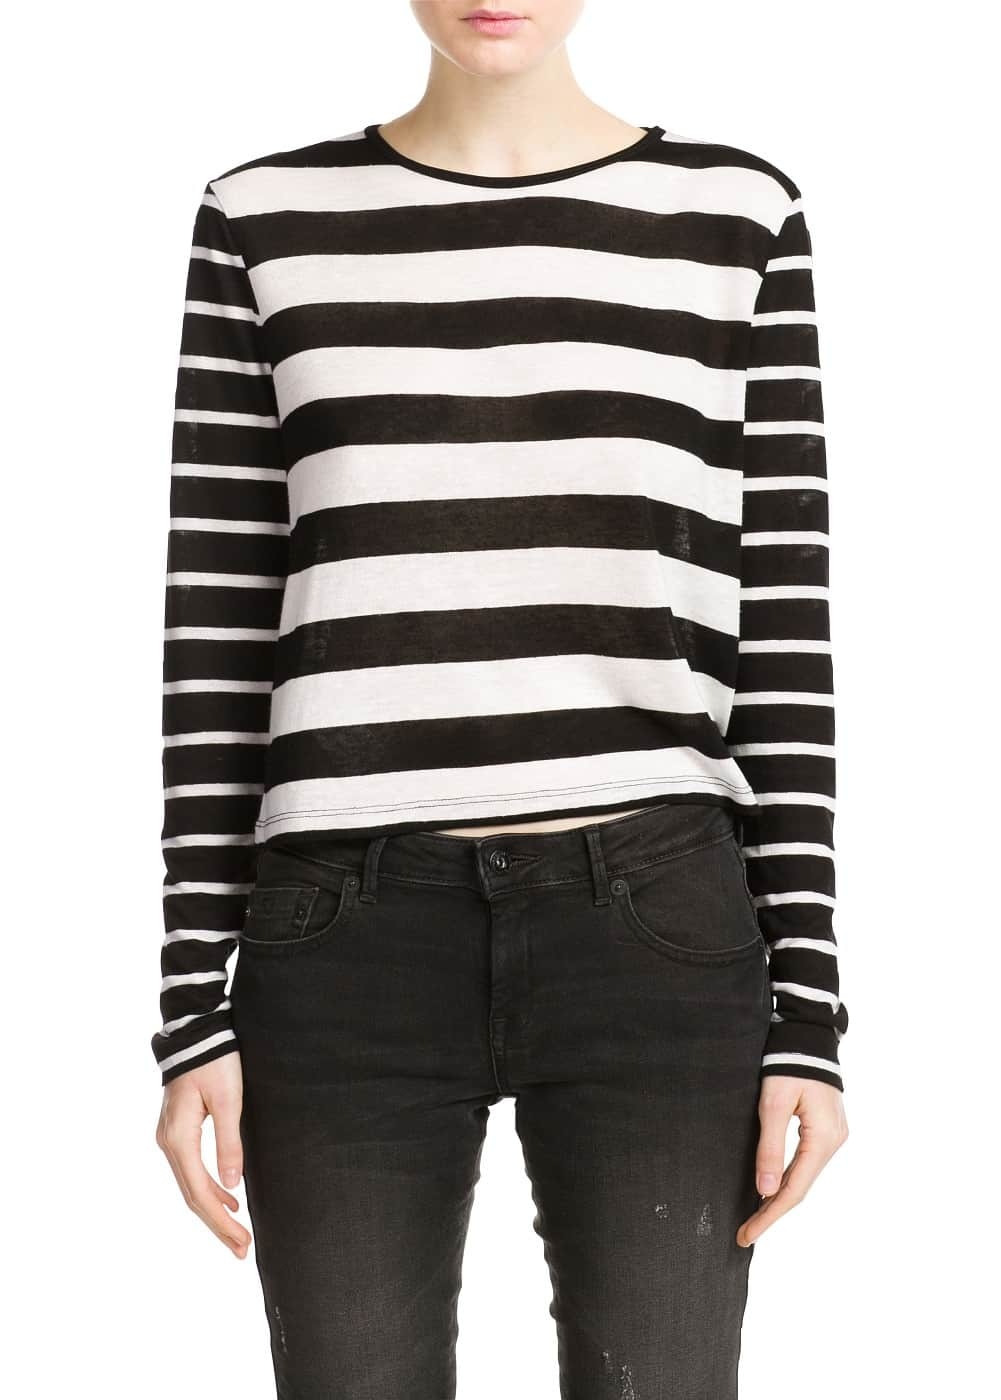 Monochrome striped t-shirt | MANGO